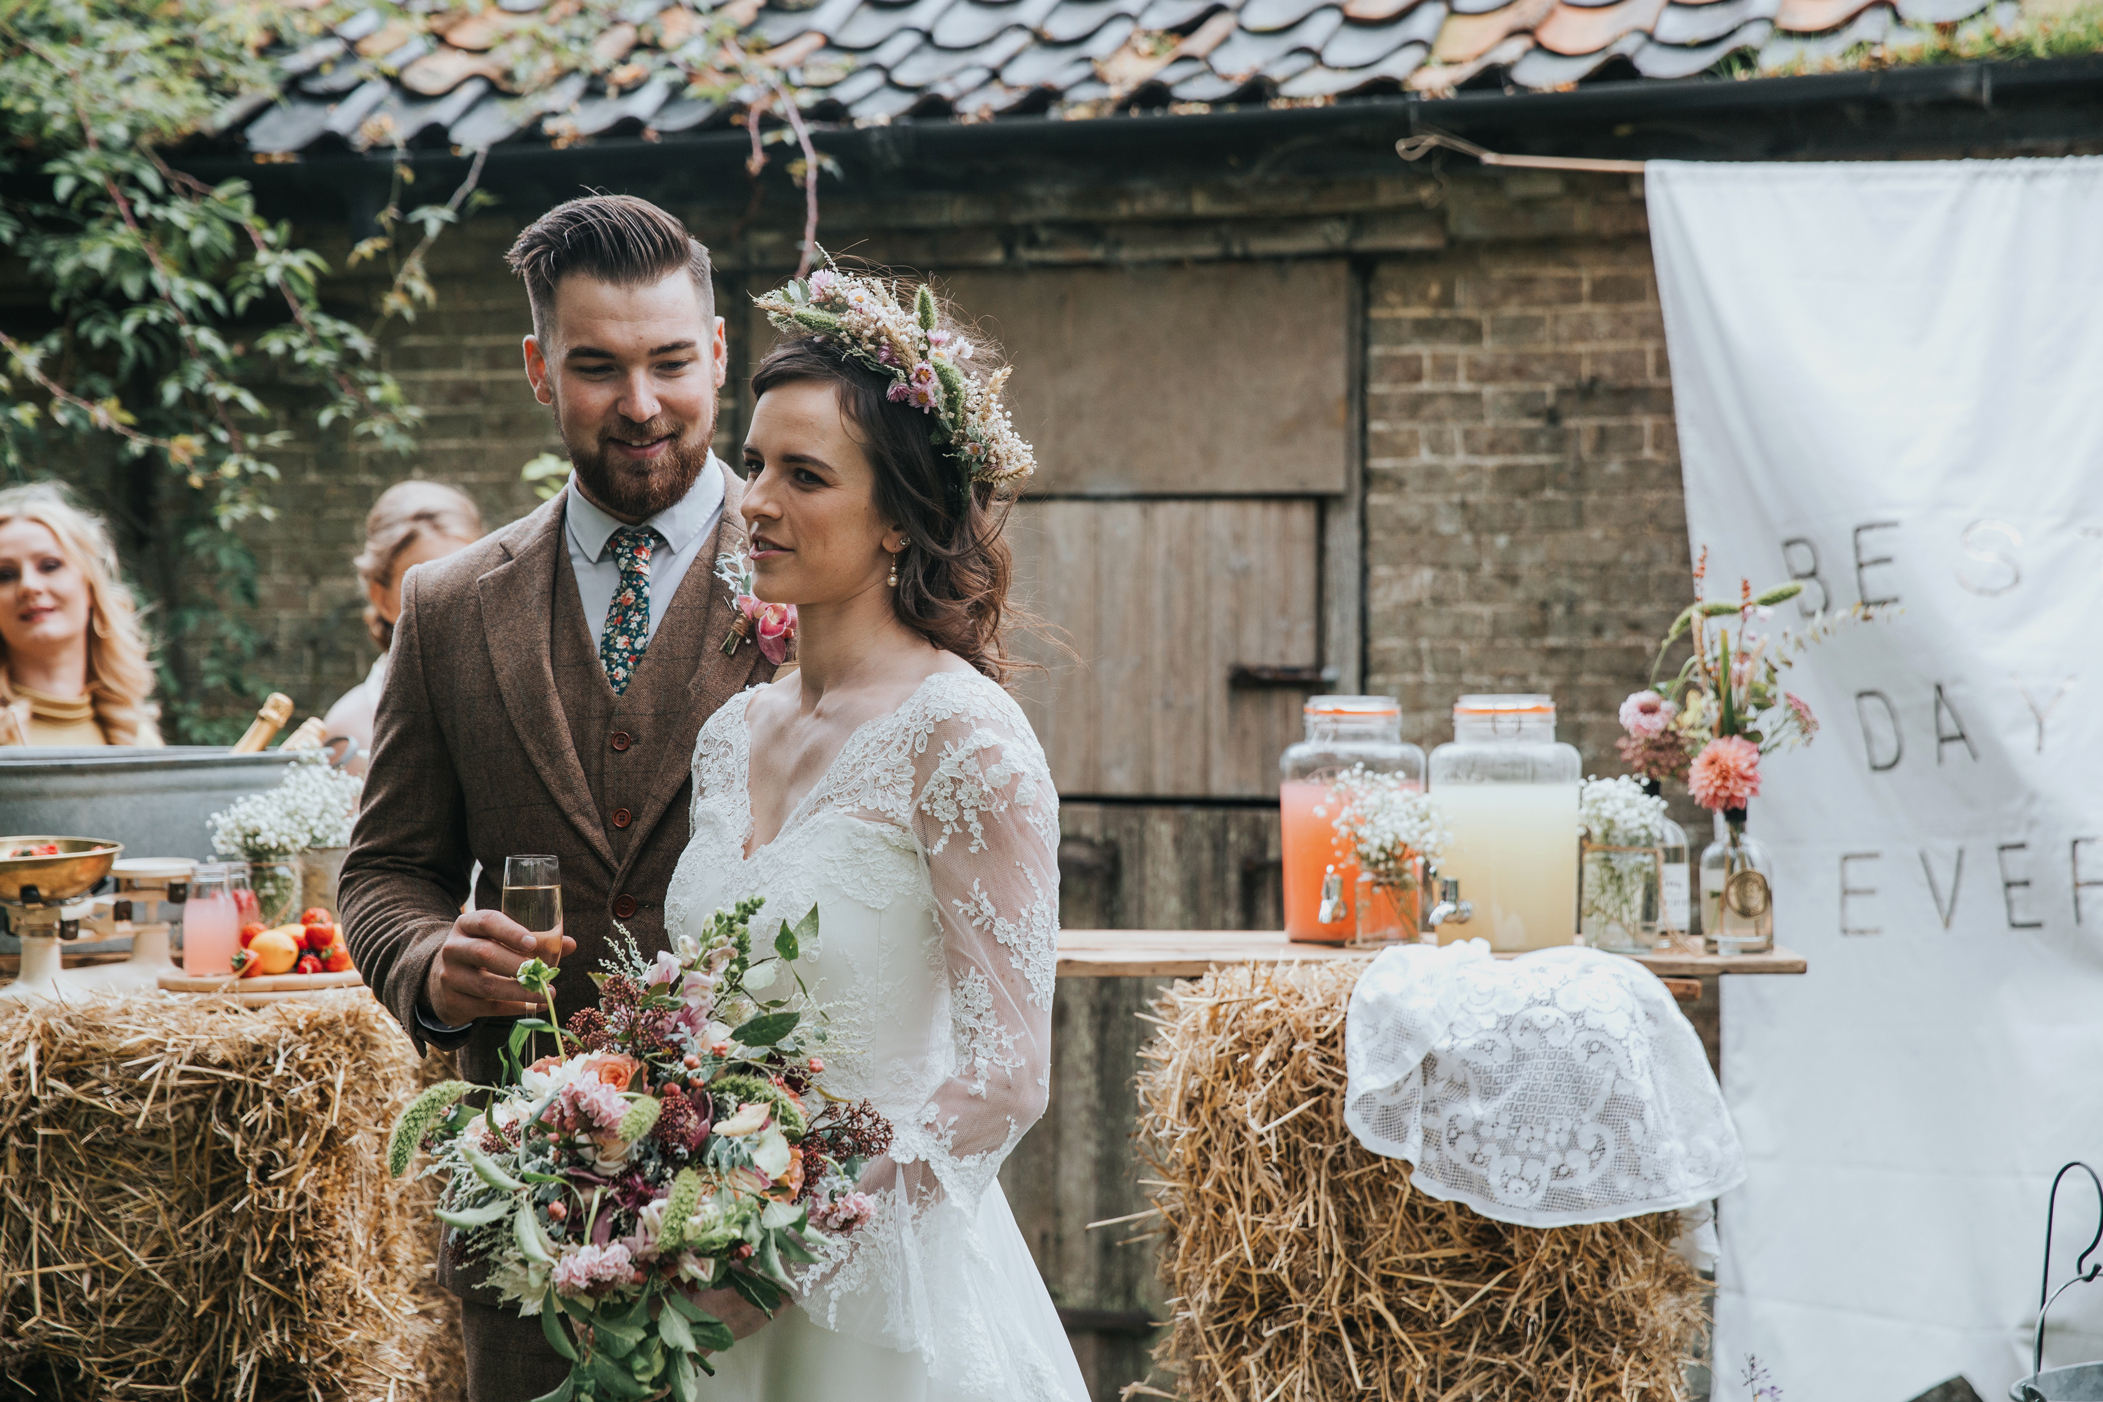 Esther_Wild_Little_Horse_Box_Norfolk_Wedding_IMG_2871.jpg